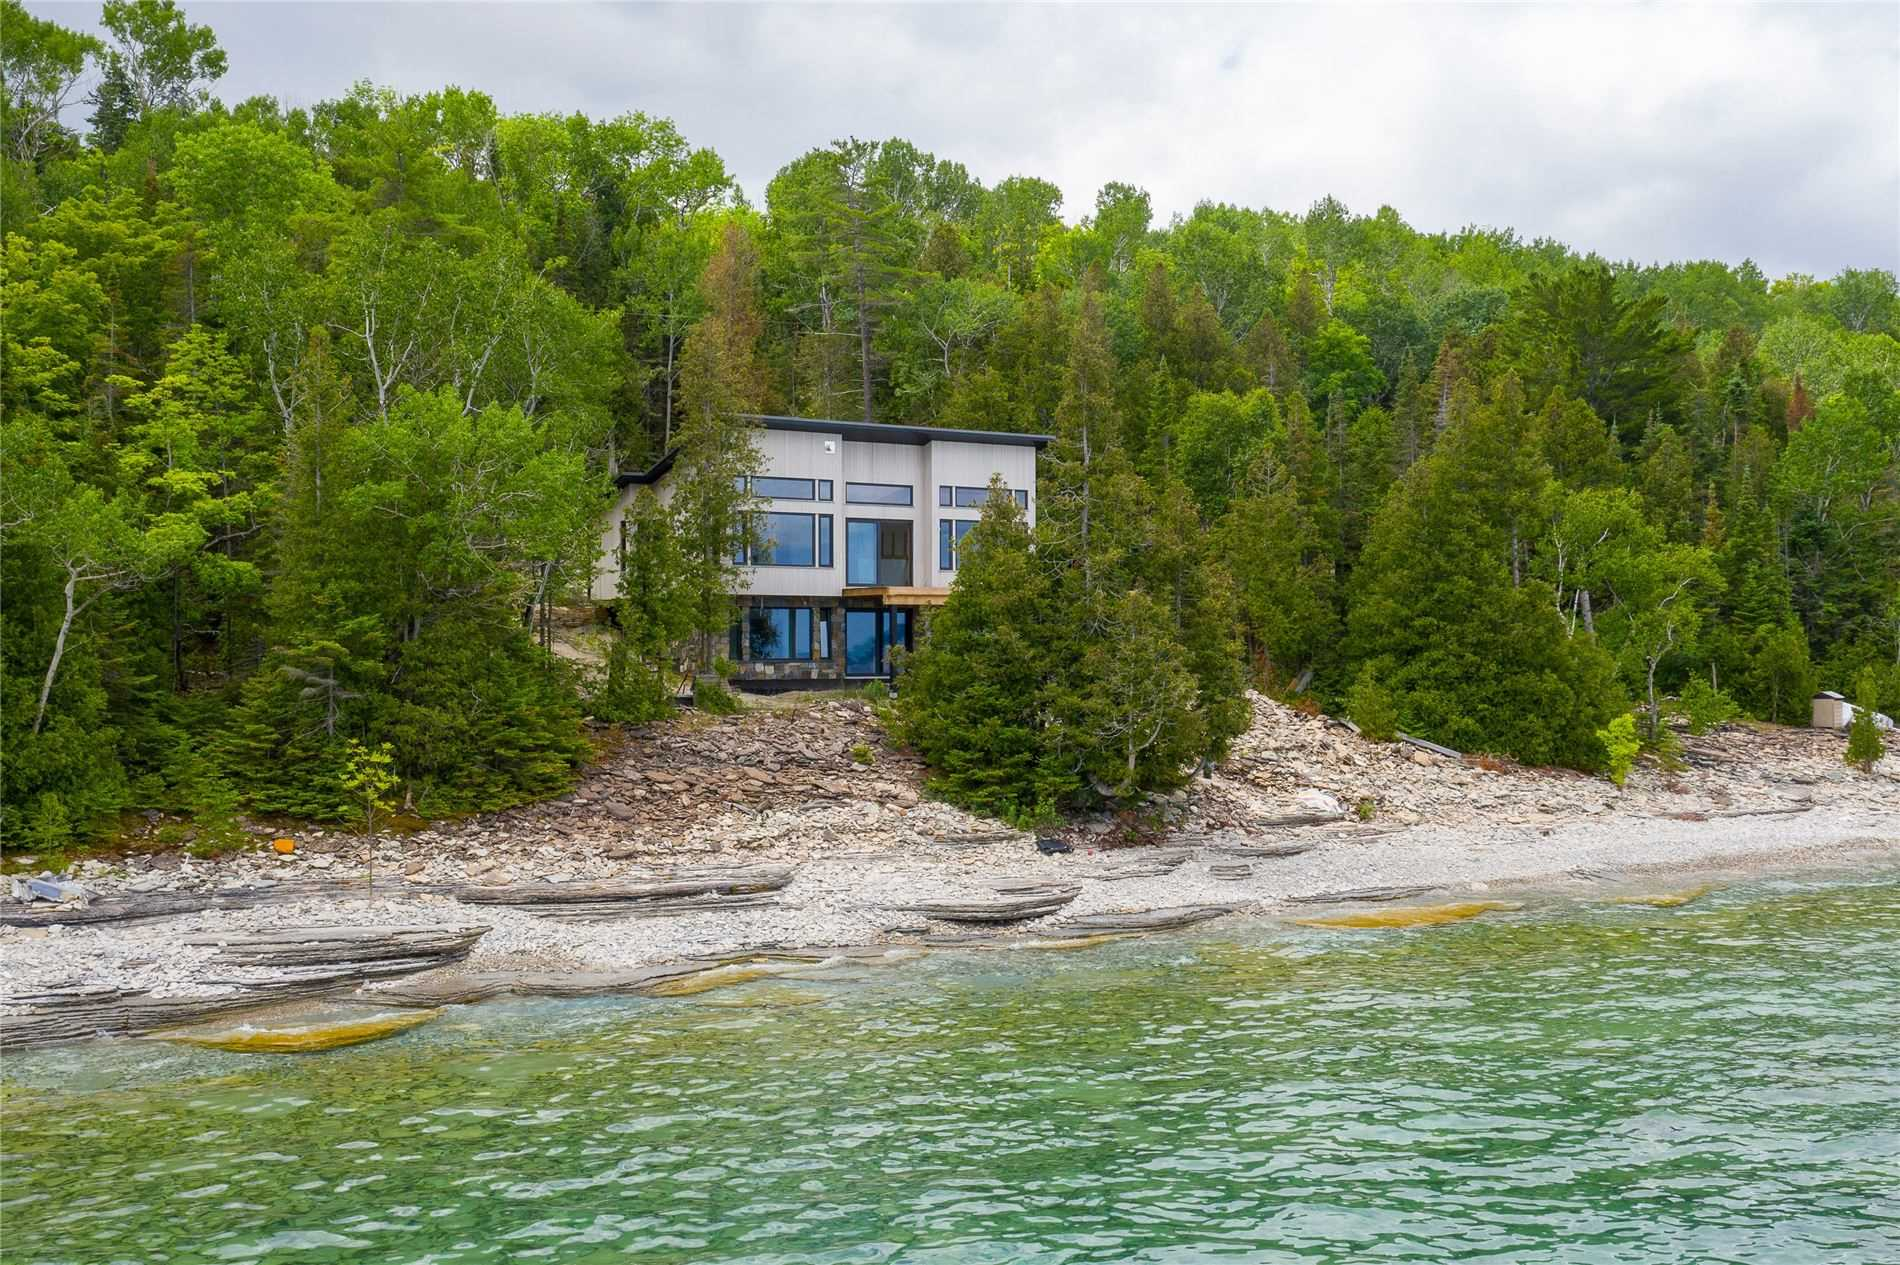 62 Cape Chin Nrth Shore Rd, Northern Bruce Peninsula, Ontario N0H 1W0, 3 Bedrooms Bedrooms, 8 Rooms Rooms,3 BathroomsBathrooms,Detached,For Sale,Cape Chin Nrth Shore,X4833765